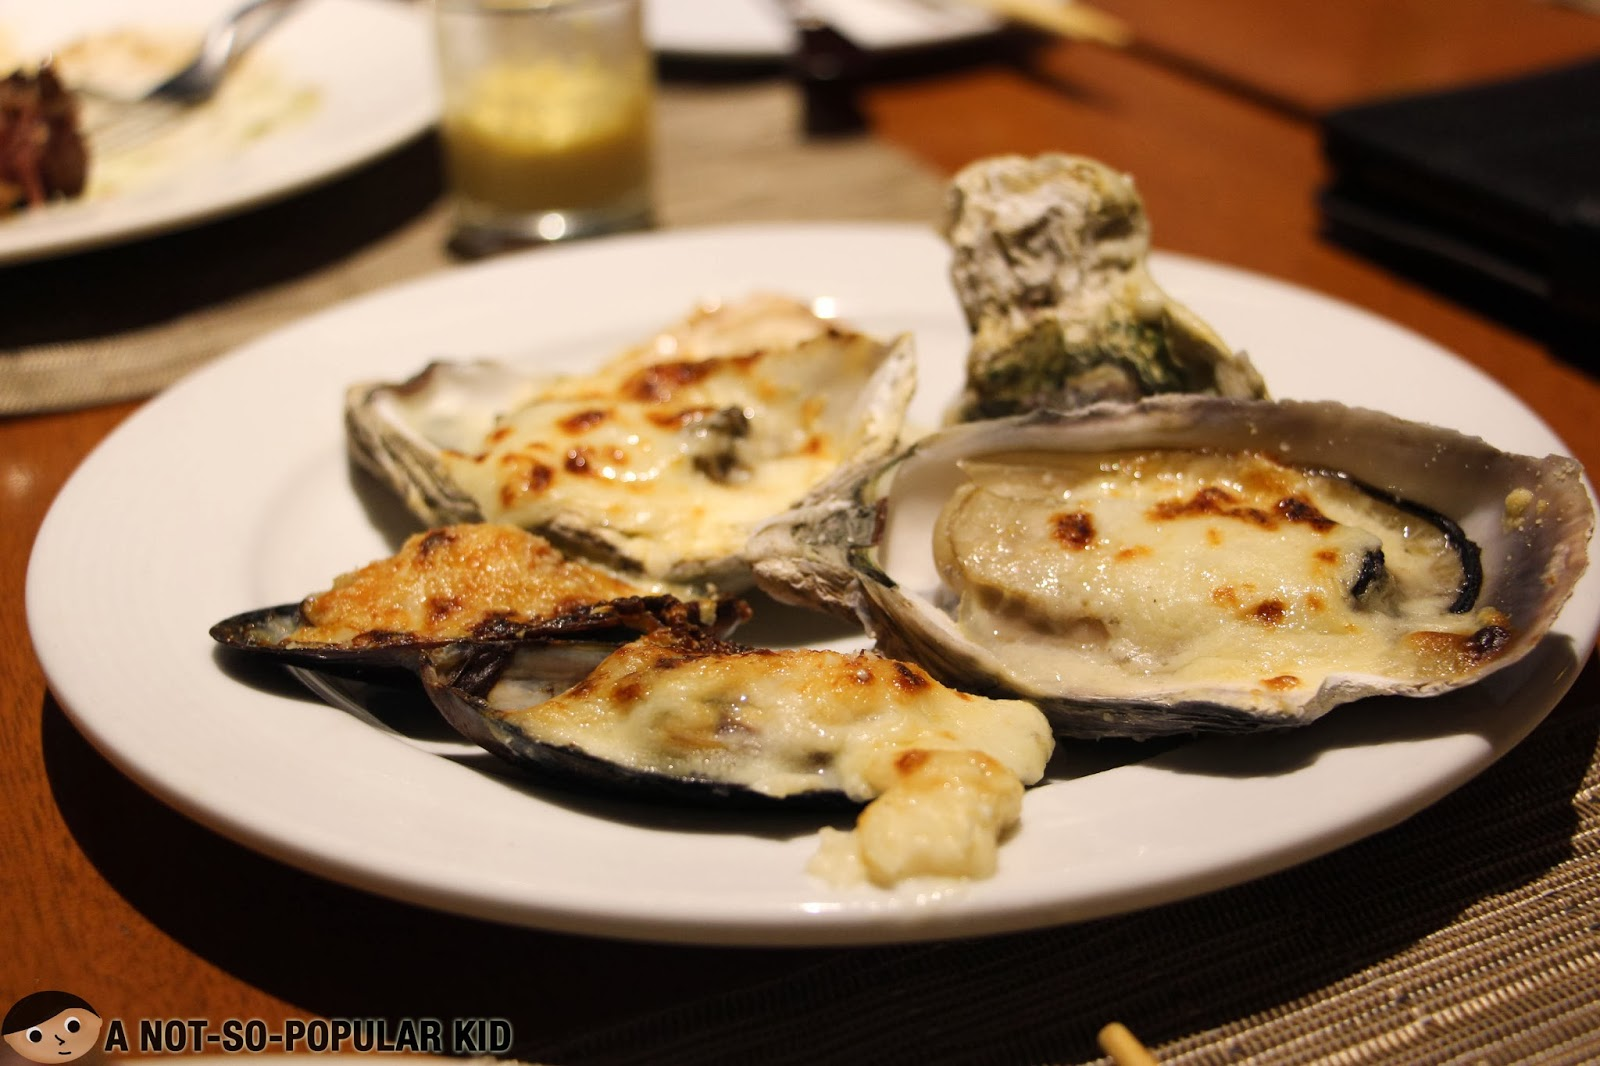 The Baked Oyster of Basix - Delightfully Fresh!